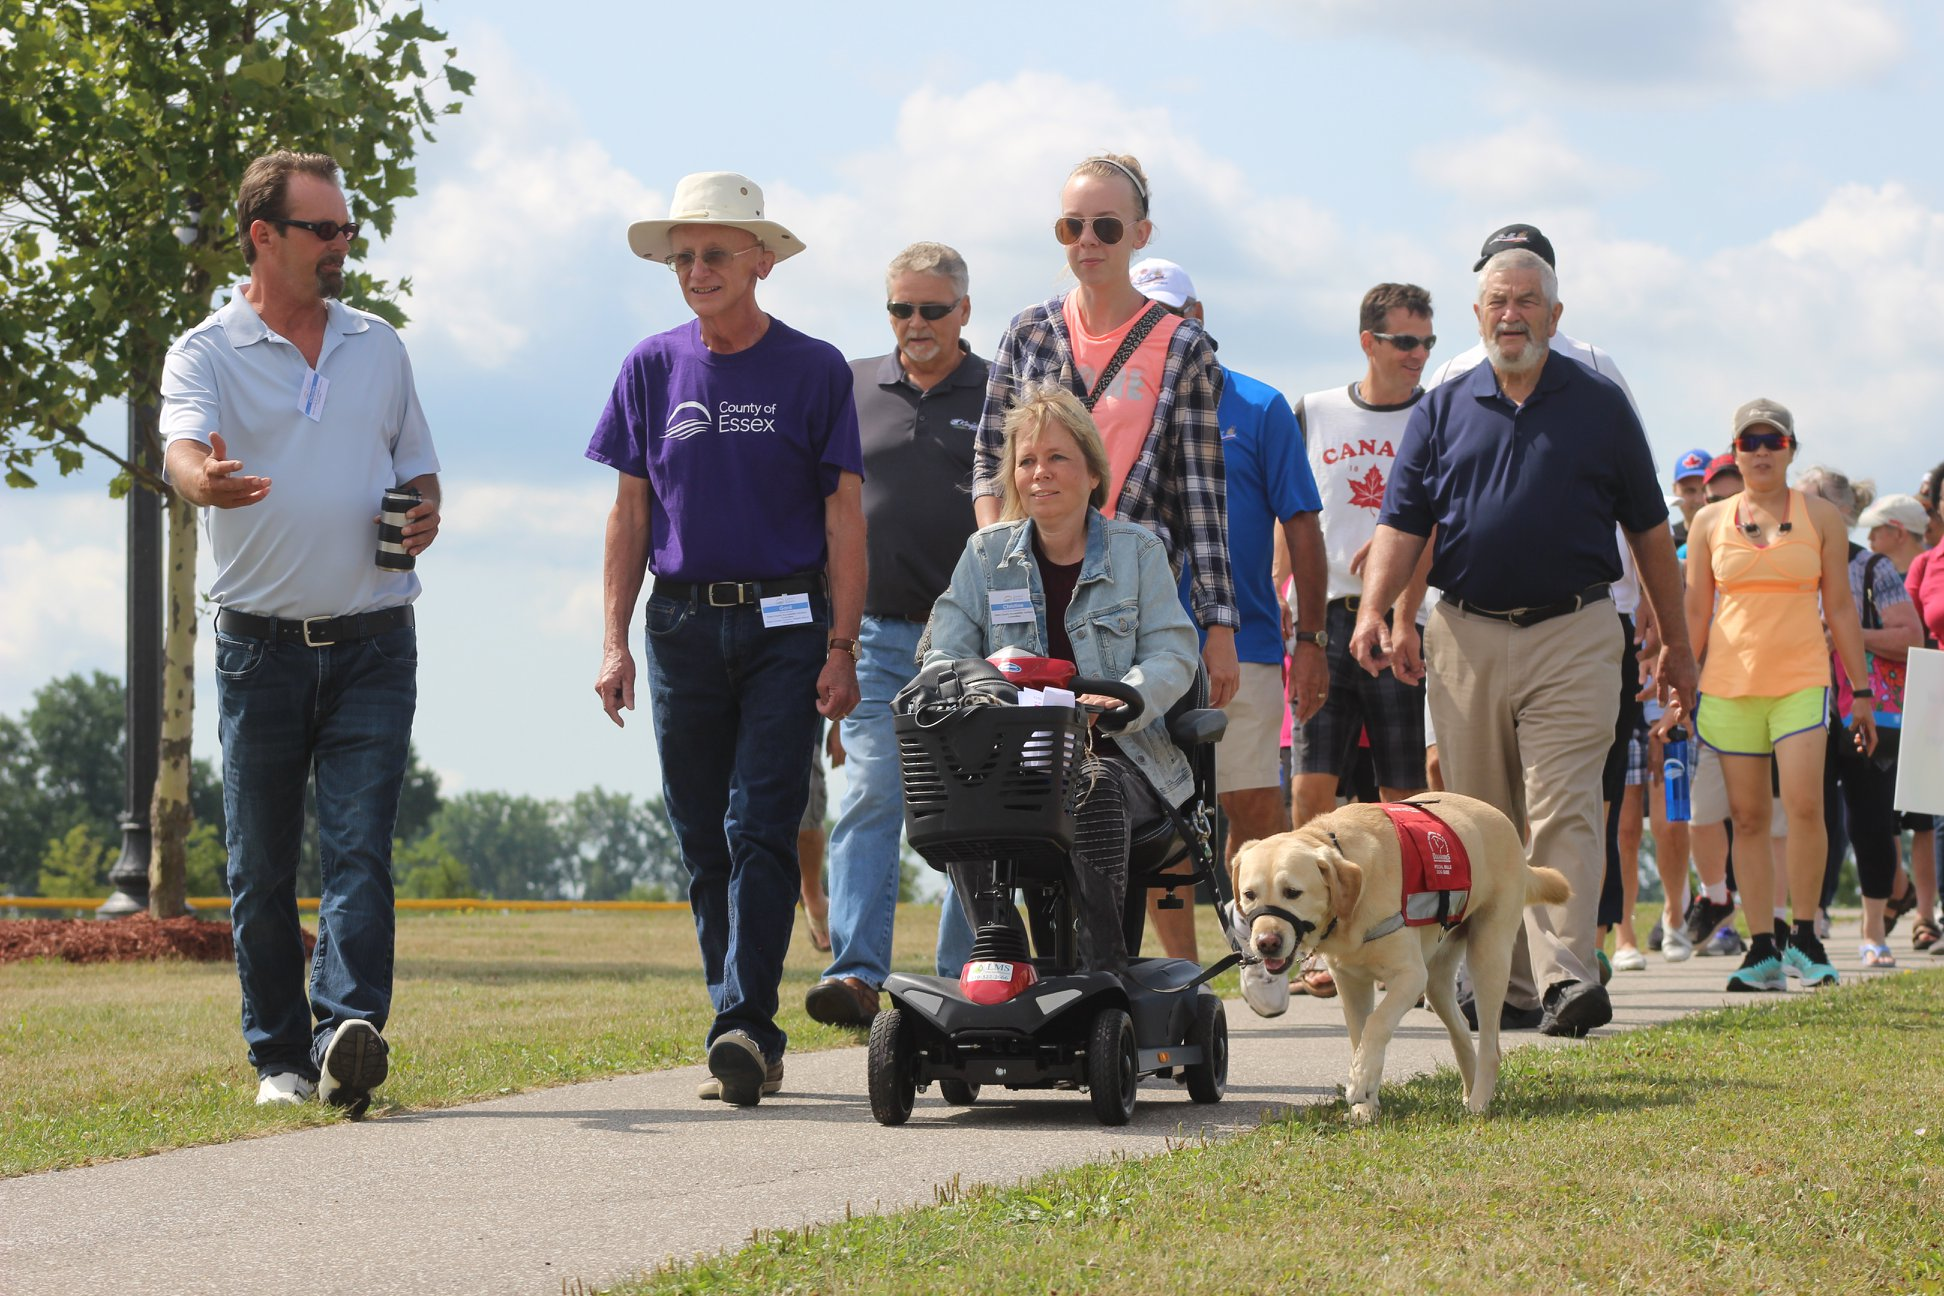 Participants take part in the first ever Essex County Accessibility Awareness Walk